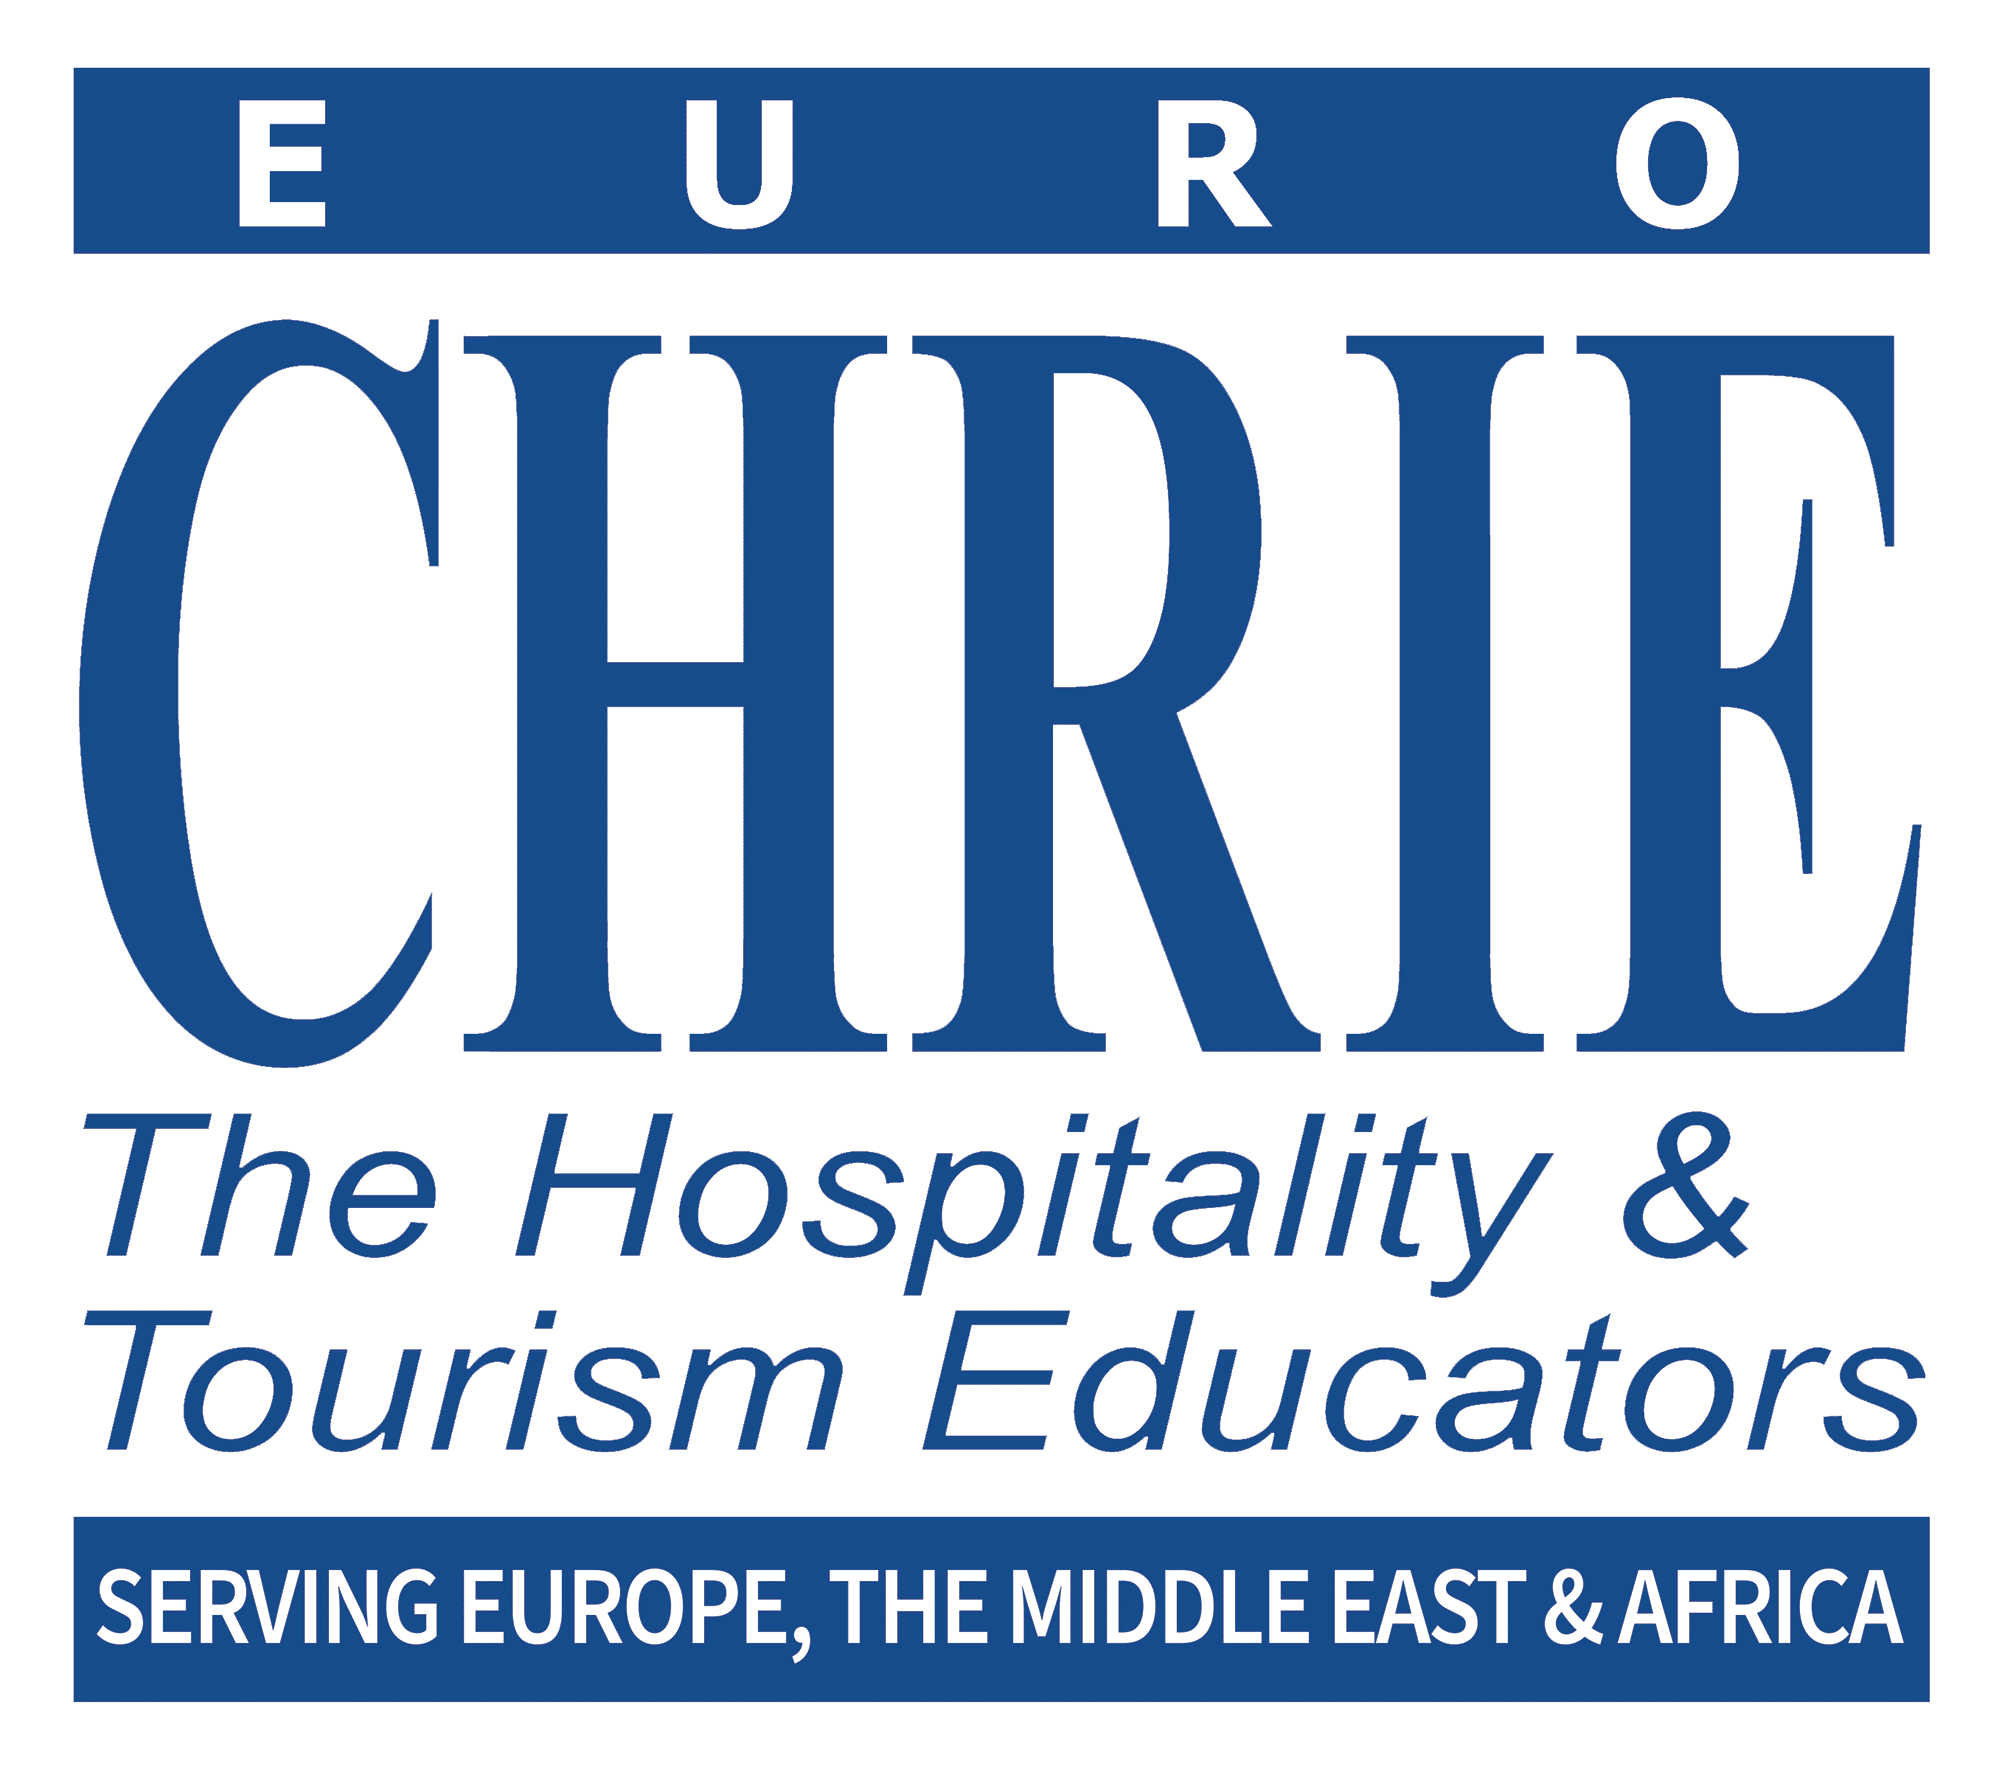 Journal of Hospitality & Tourism Education (JHTE) 9